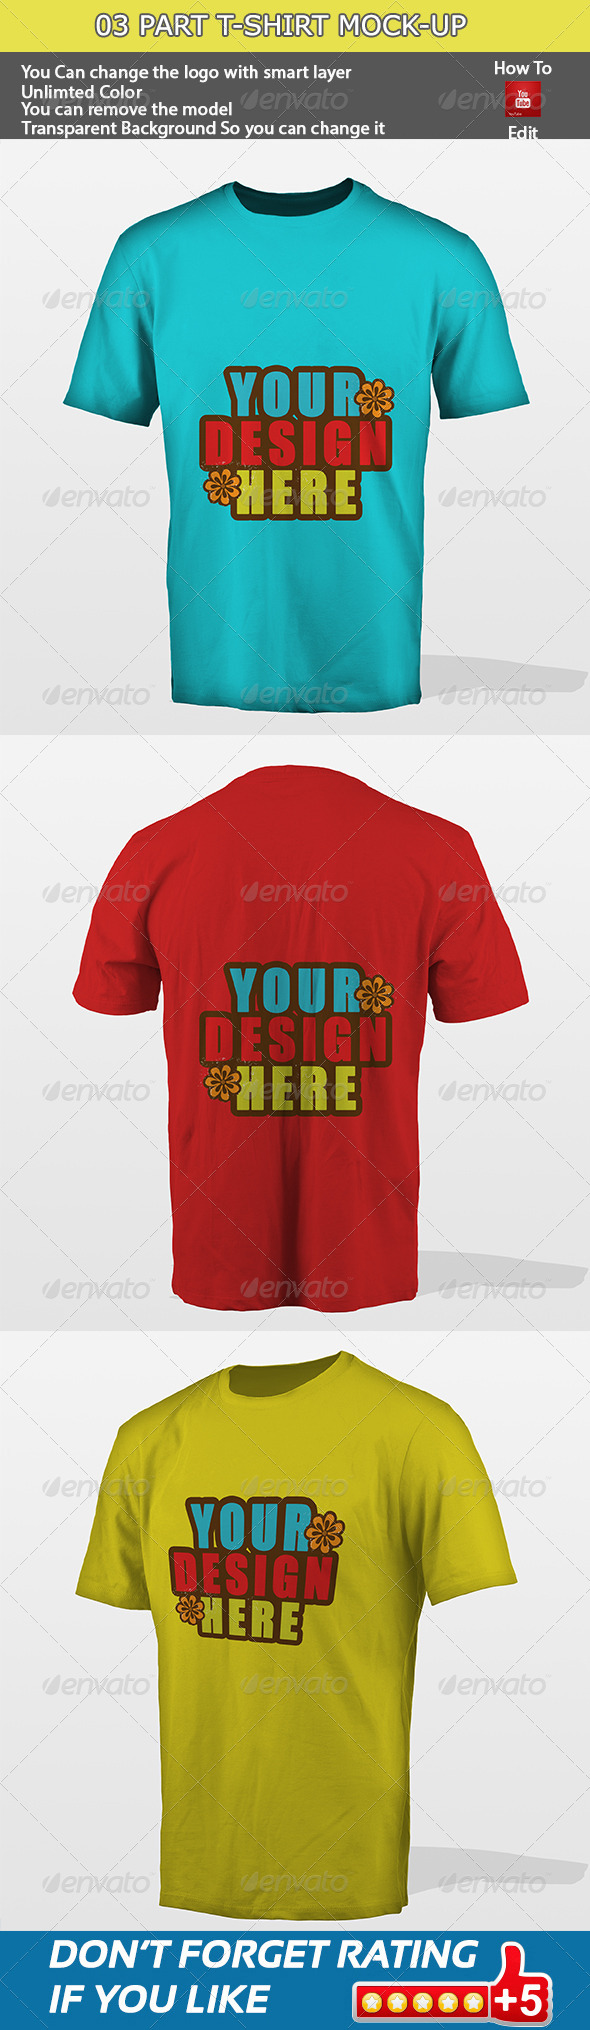 GraphicRiver 03 Part T-shirt Mock-up 5717792